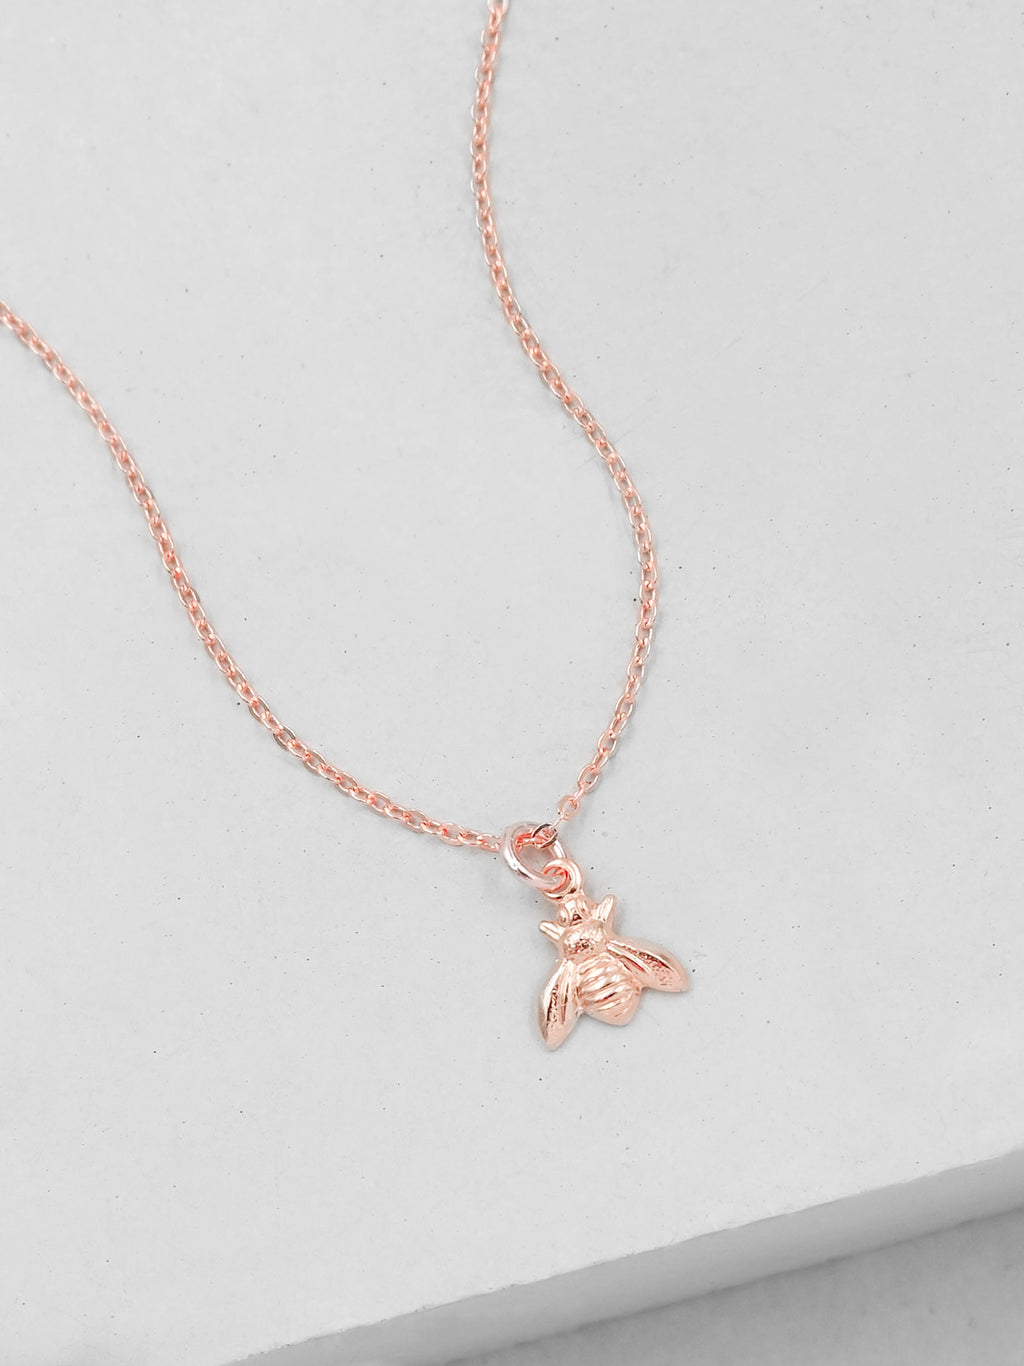 Rose Gold Mini Bumblebee  Necklace by The Faint Hearted Jewelry